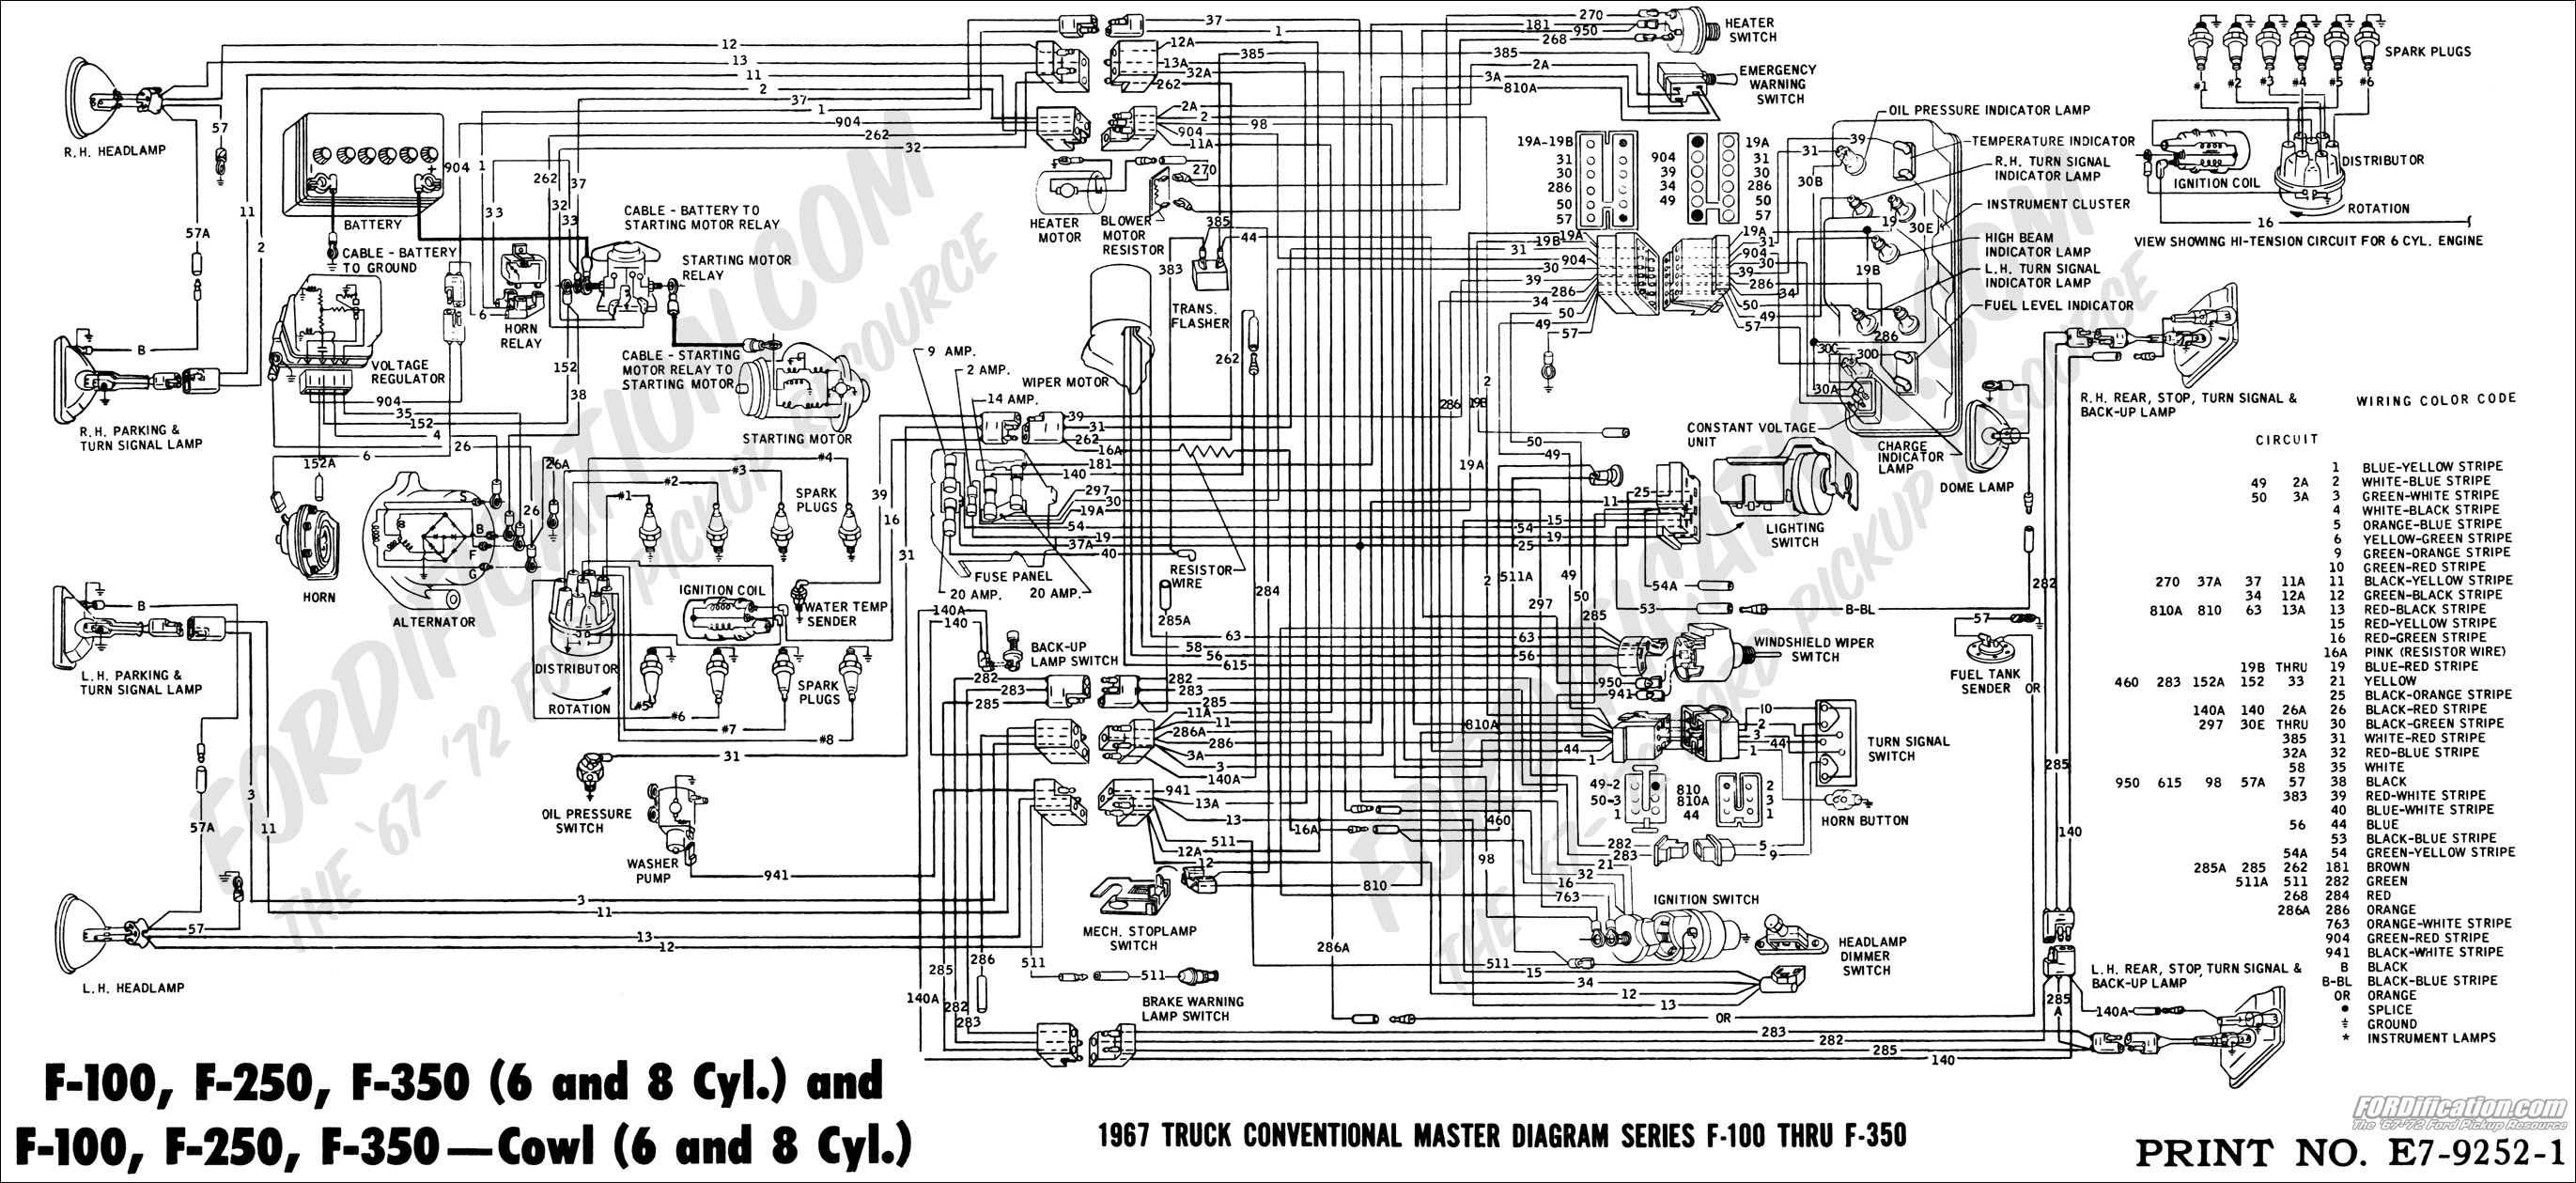 2005 ford f150 wiring diagram detailed schematics diagram rh lelandlutheran  com 2012 f150 wiring diagram 90